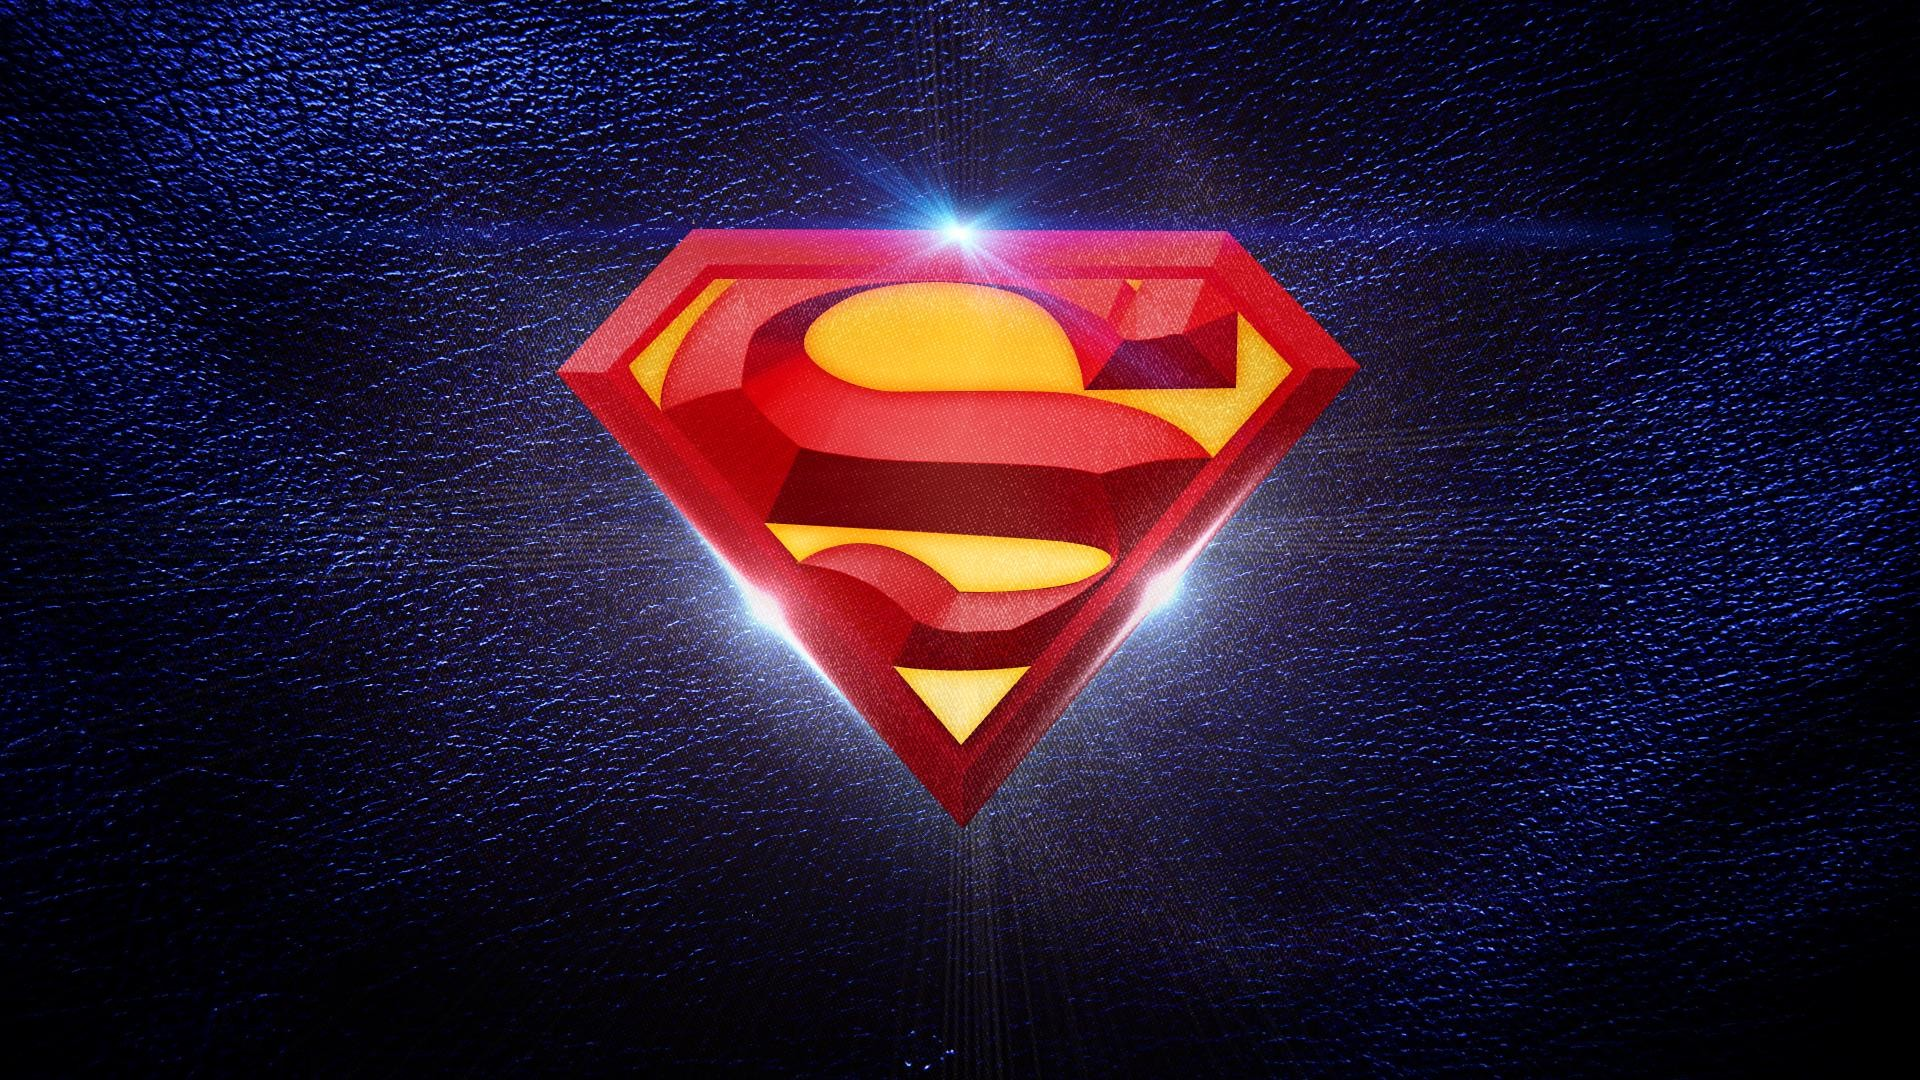 Superman logo wallpaper – (#153234) – High Quality and Resolution .